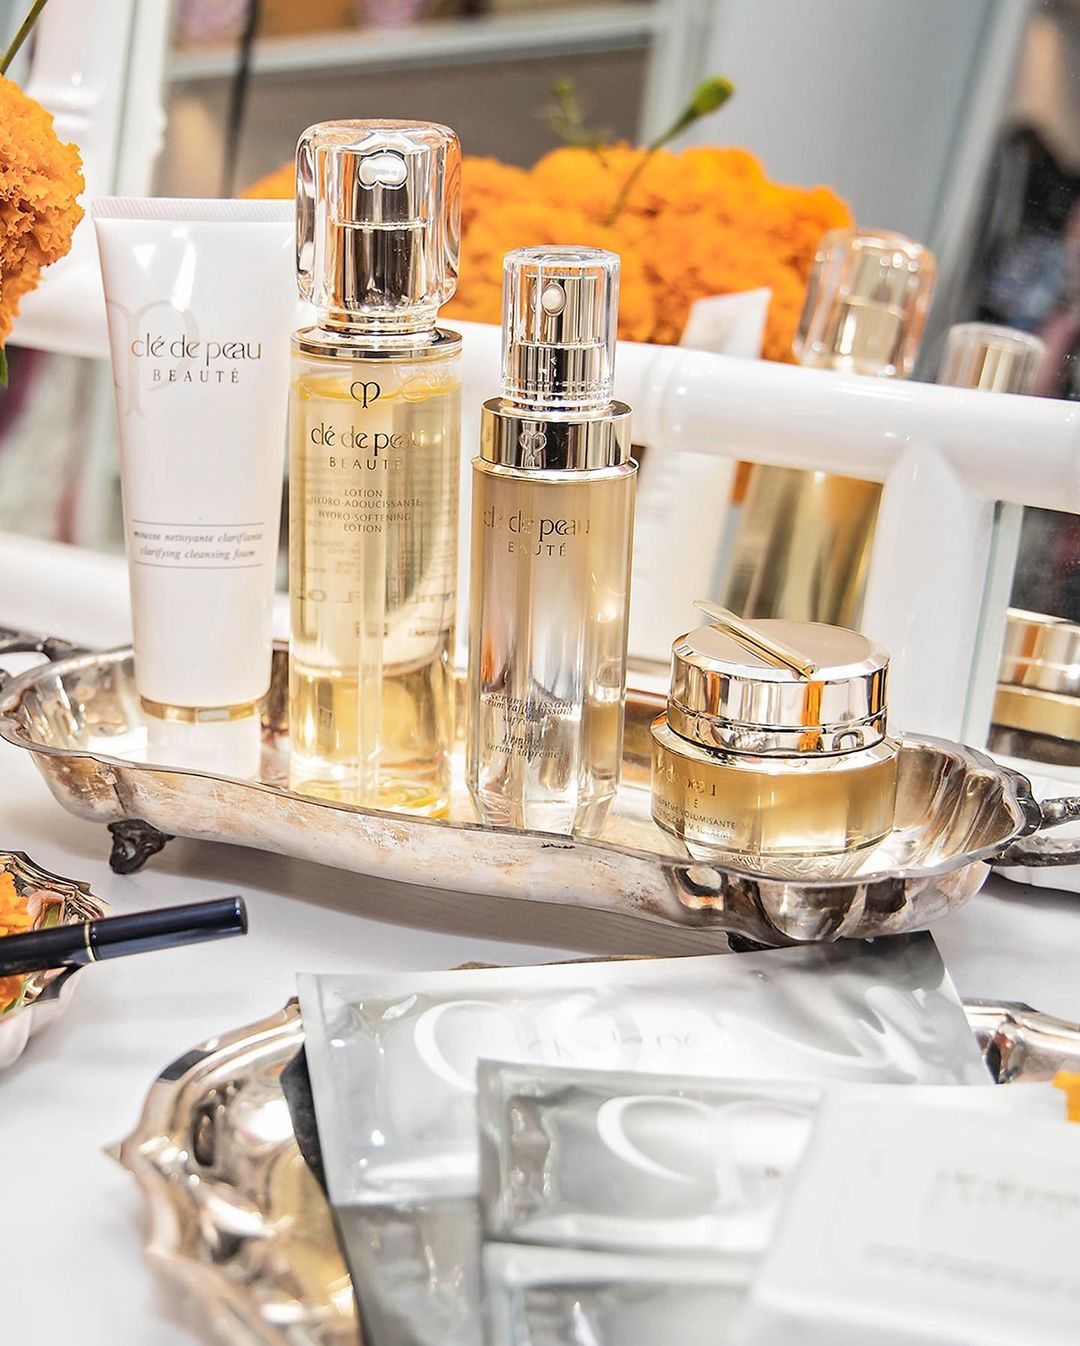 You Can Now Shop Cult-Favorite Beauty Brand Cle de Peau in Amazon Luxury Stores — Here's How